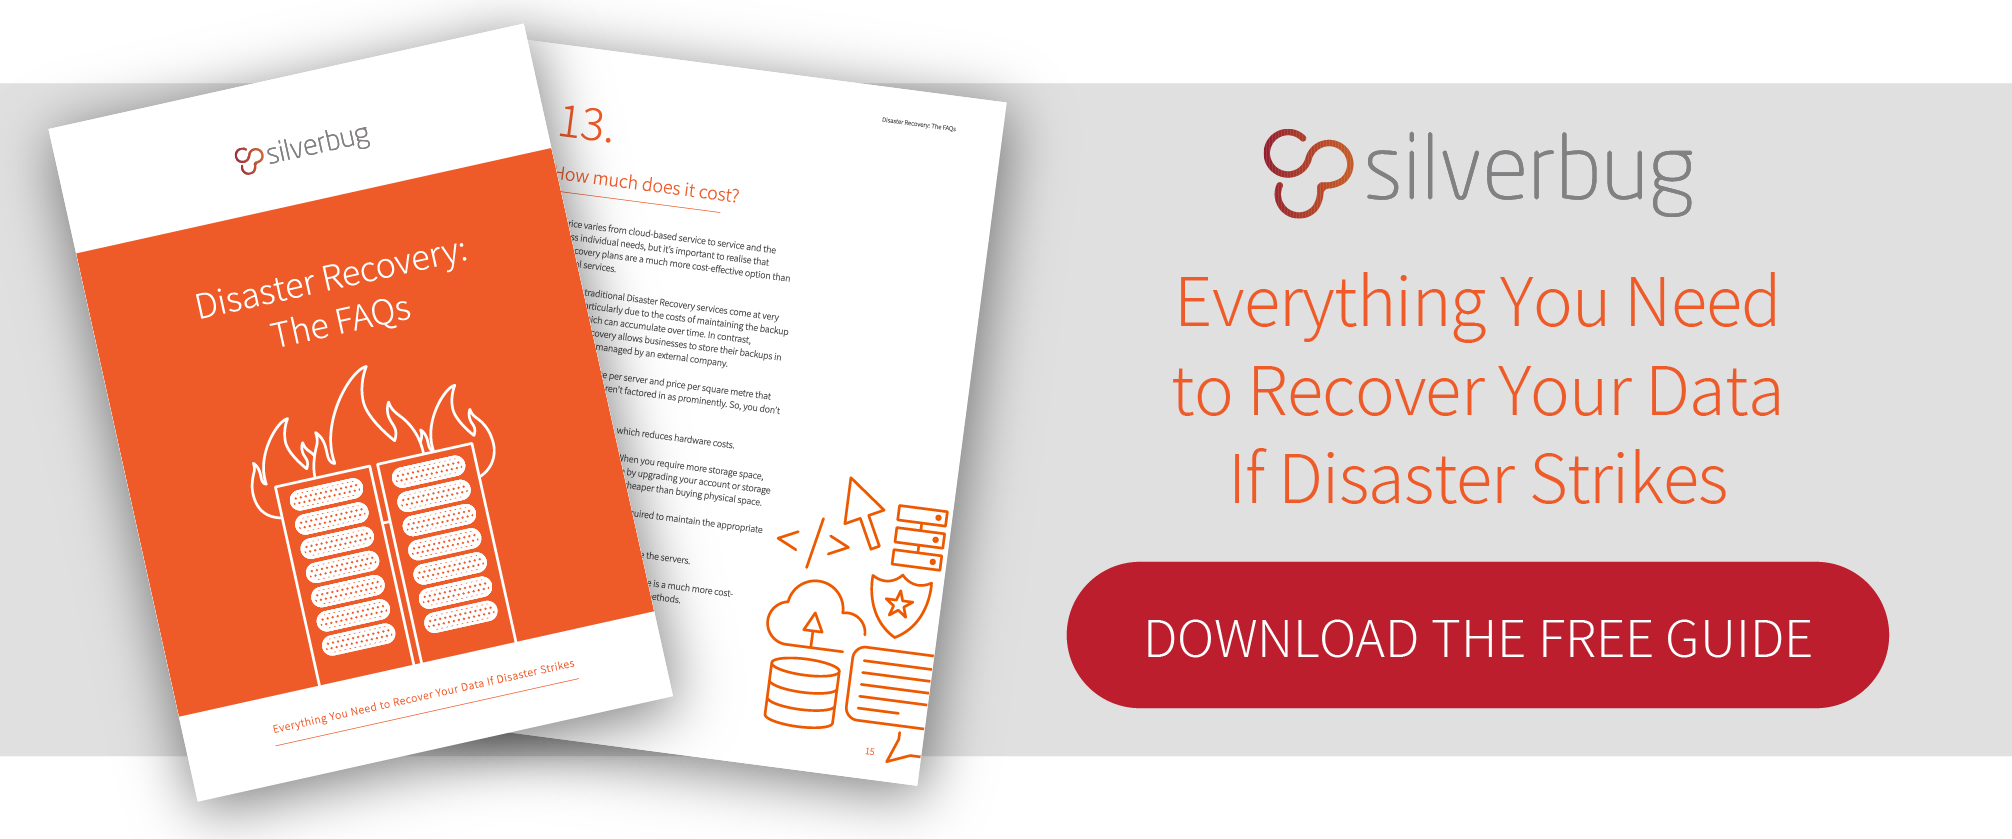 Disaster Recovery CTA